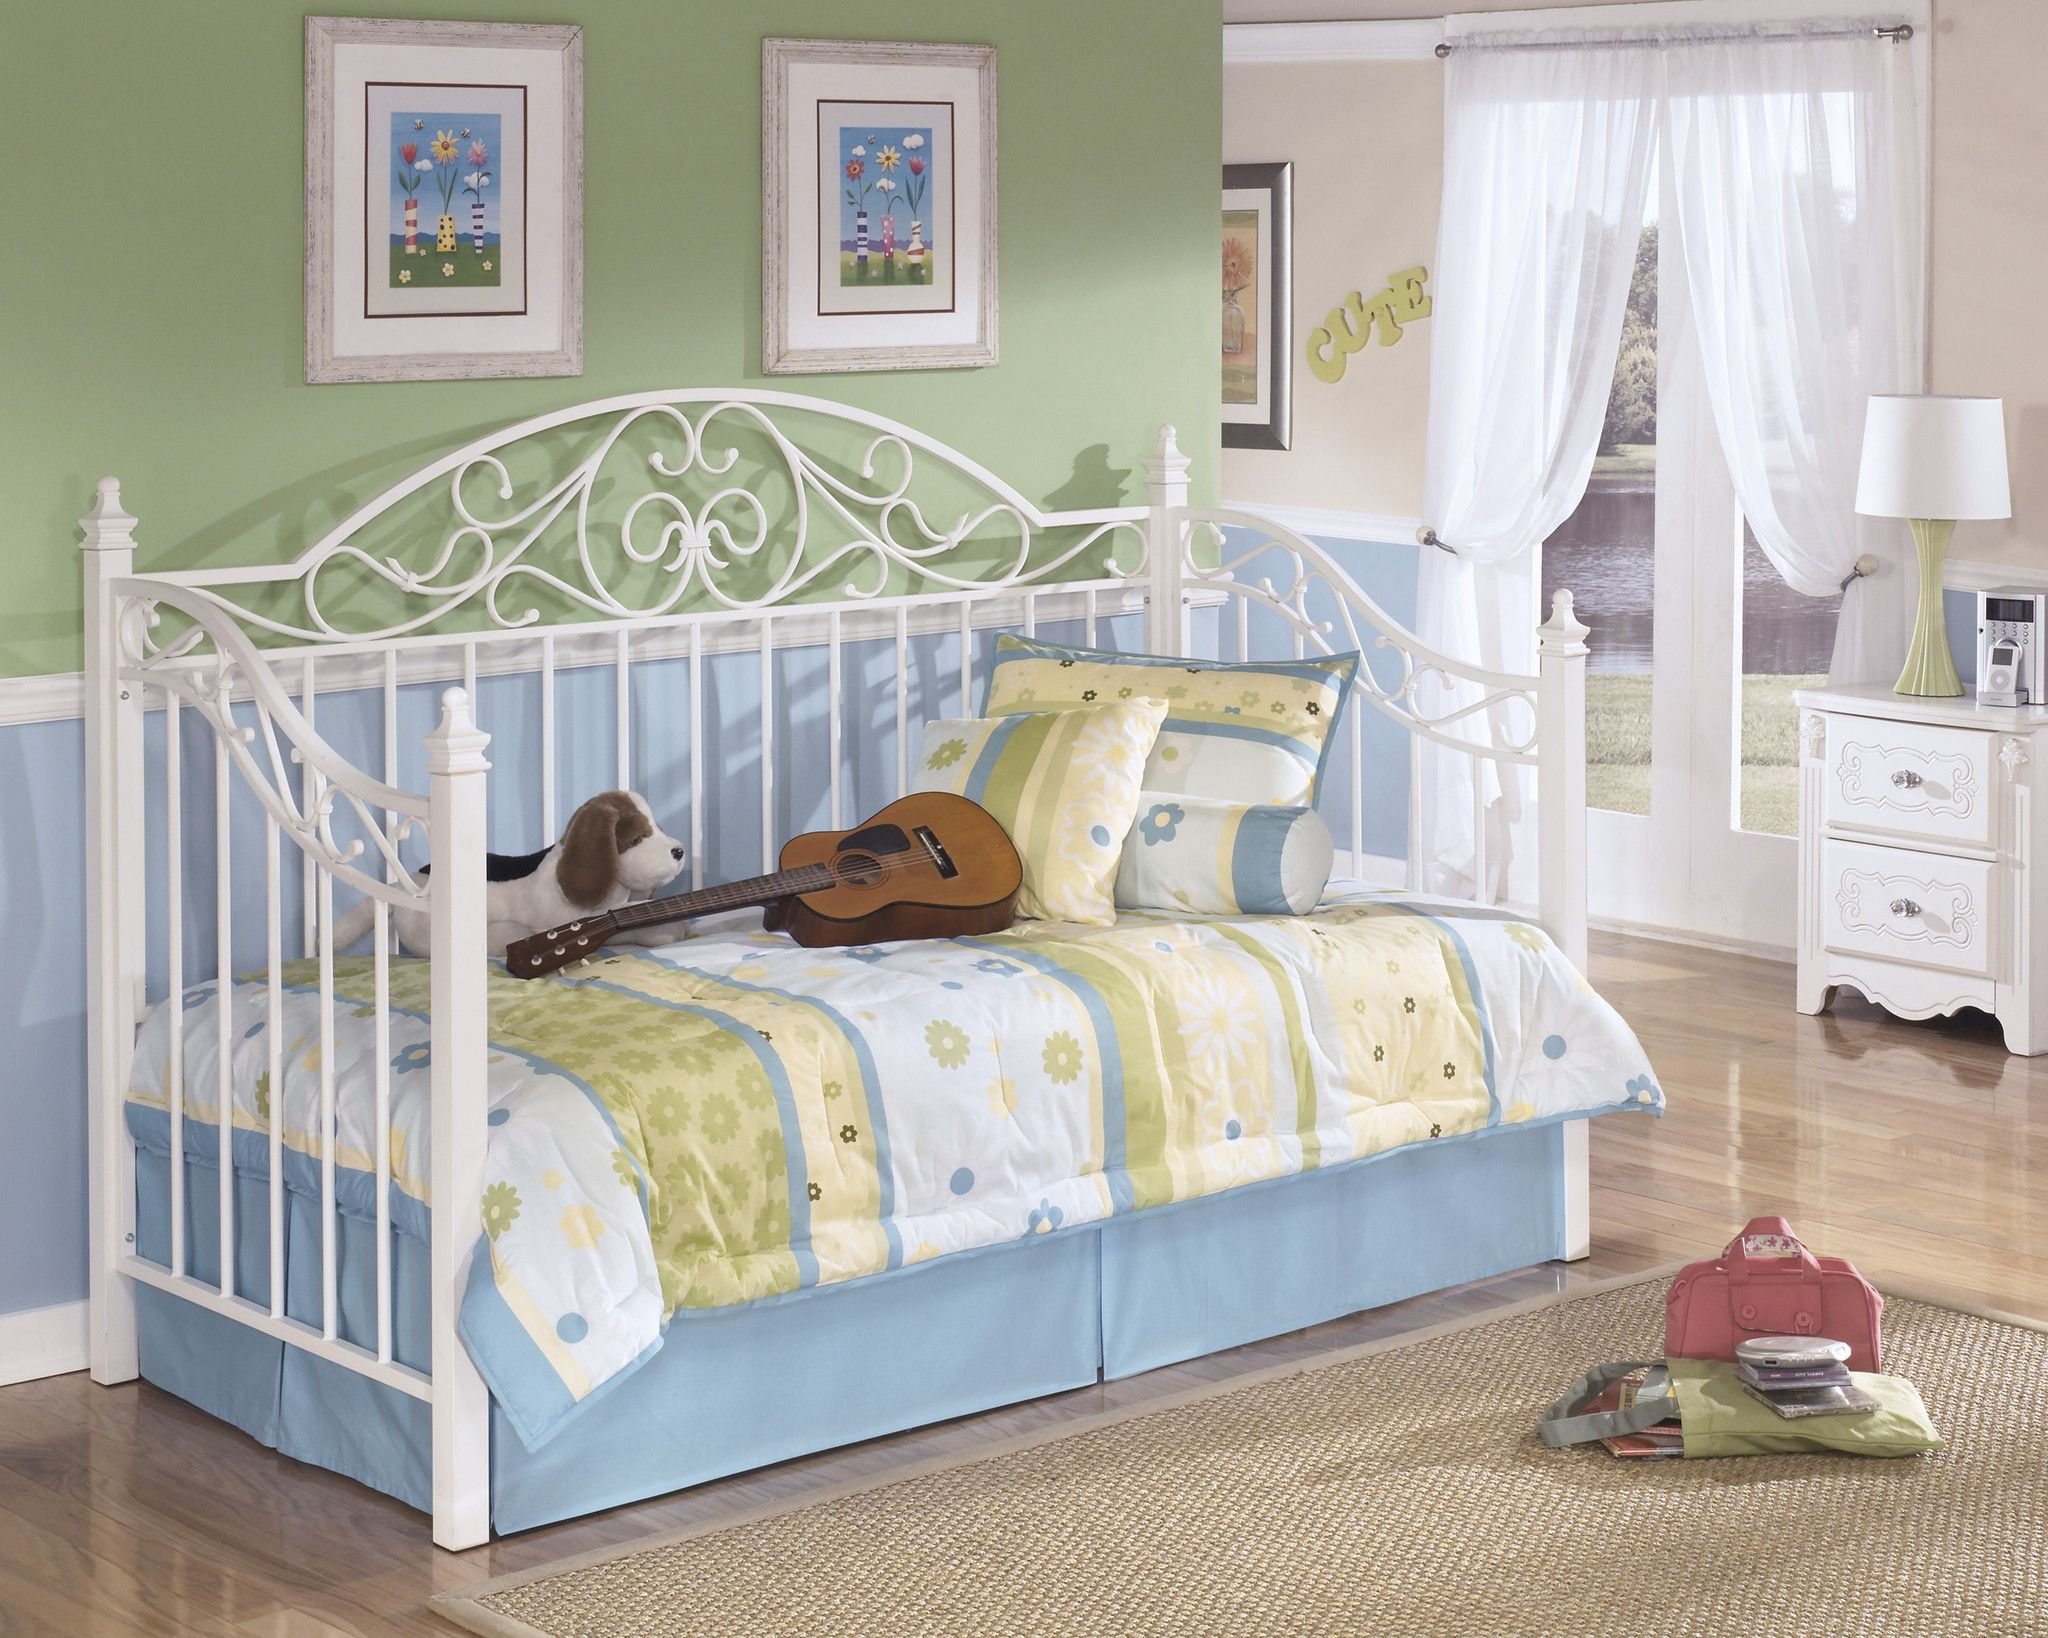 Exquisite Kids Metal Day Bed with Deck Outfit My Home